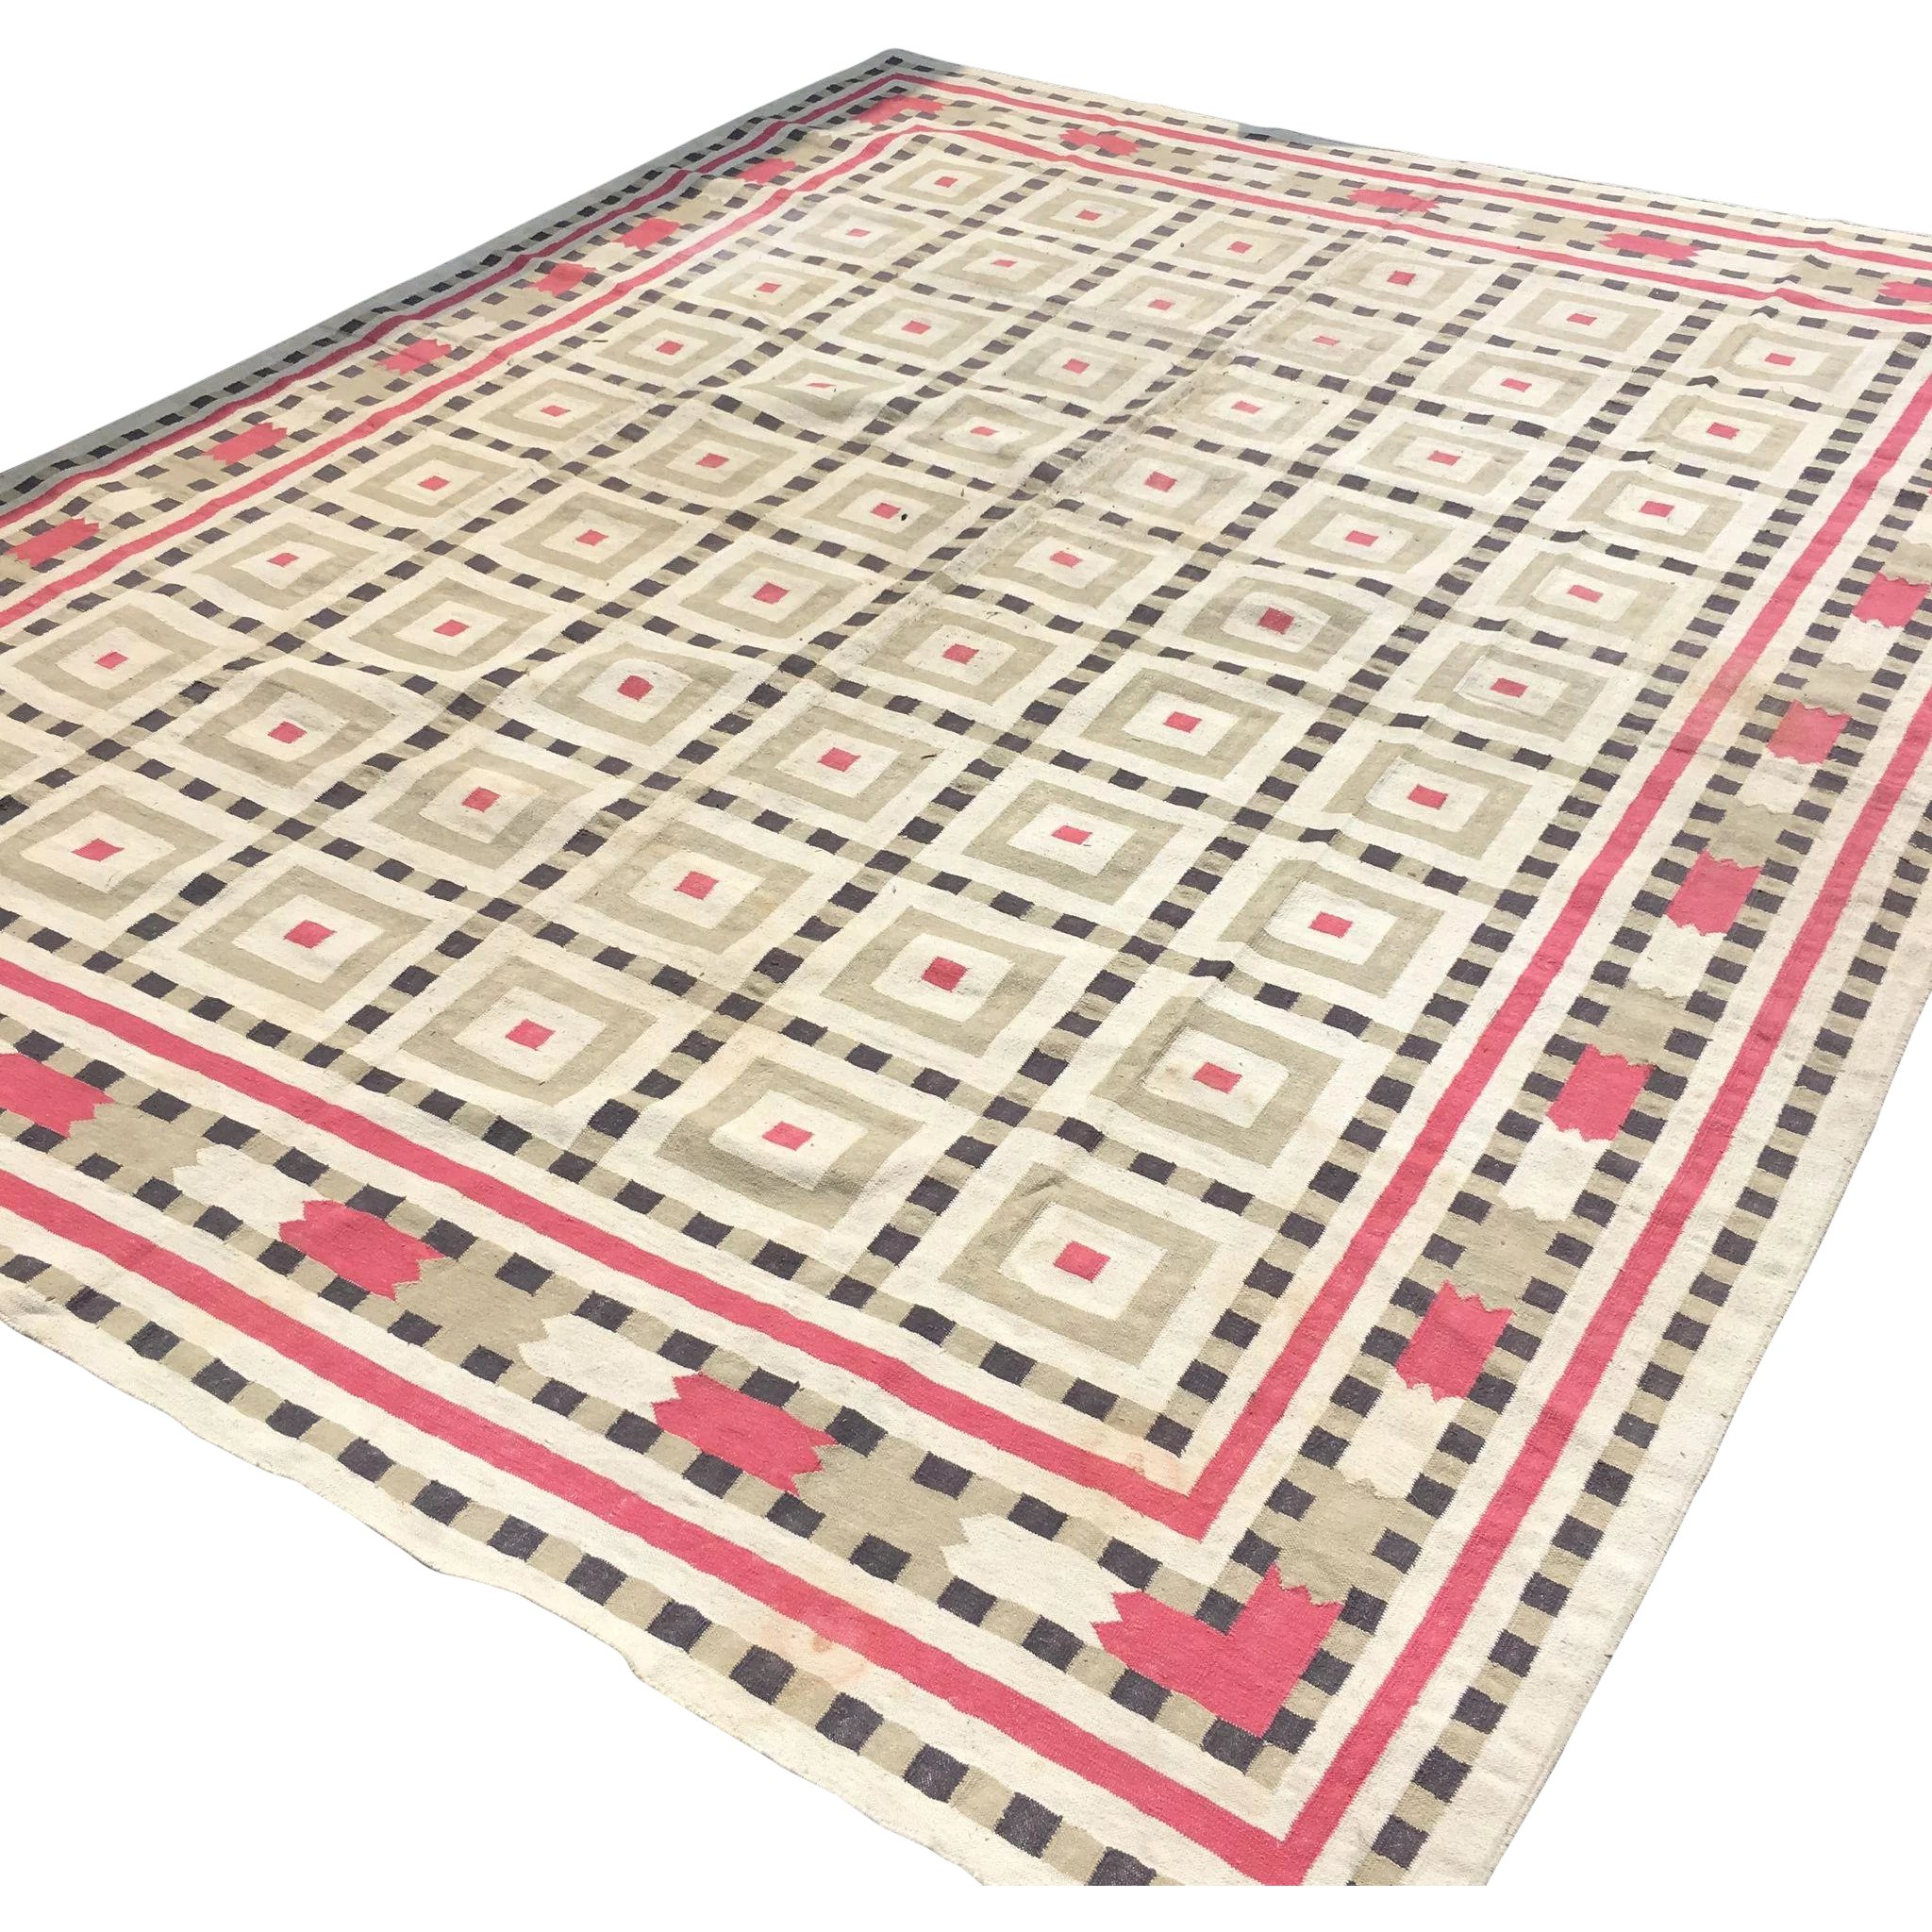 Vintage Indian Cotton Dhurrie Rug Absolutely Gorgeous 8 X10 Sold Ruby Lane